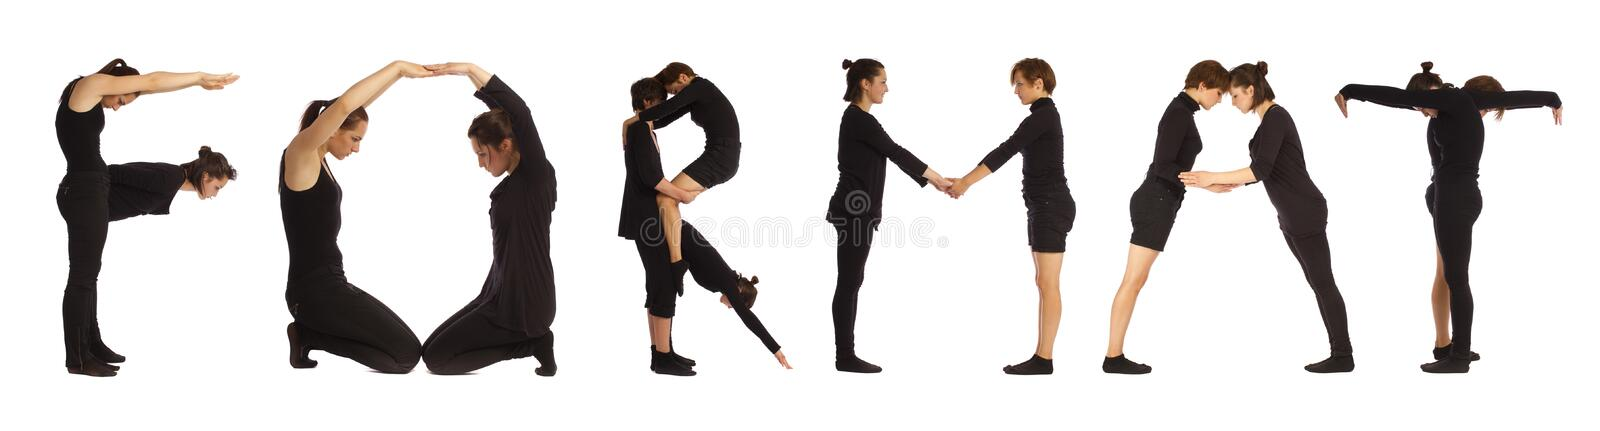 Black dressed people forming word FORMAT stock photography